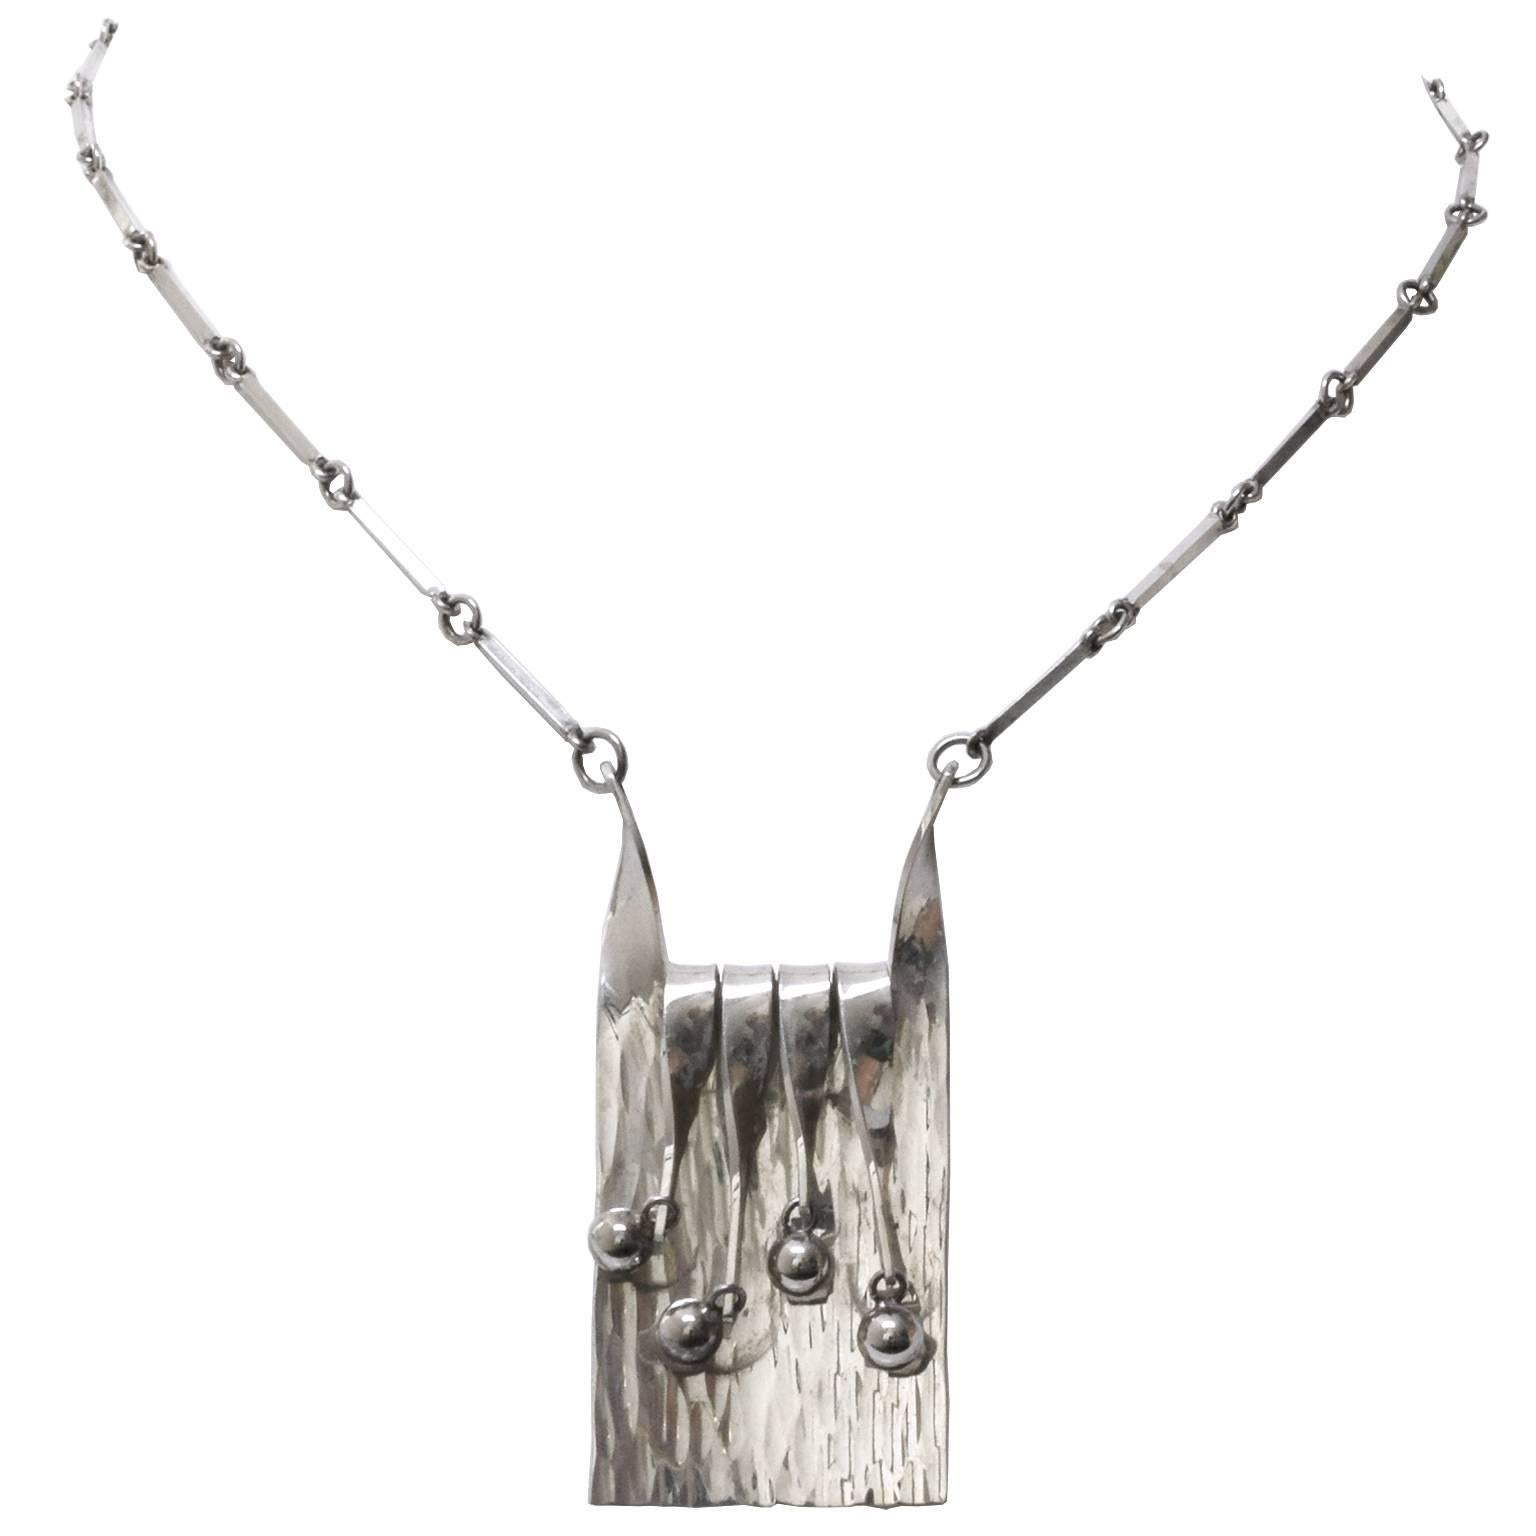 Scandinavian Modern Silver Necklace and Pendant by Eksjo, 1972